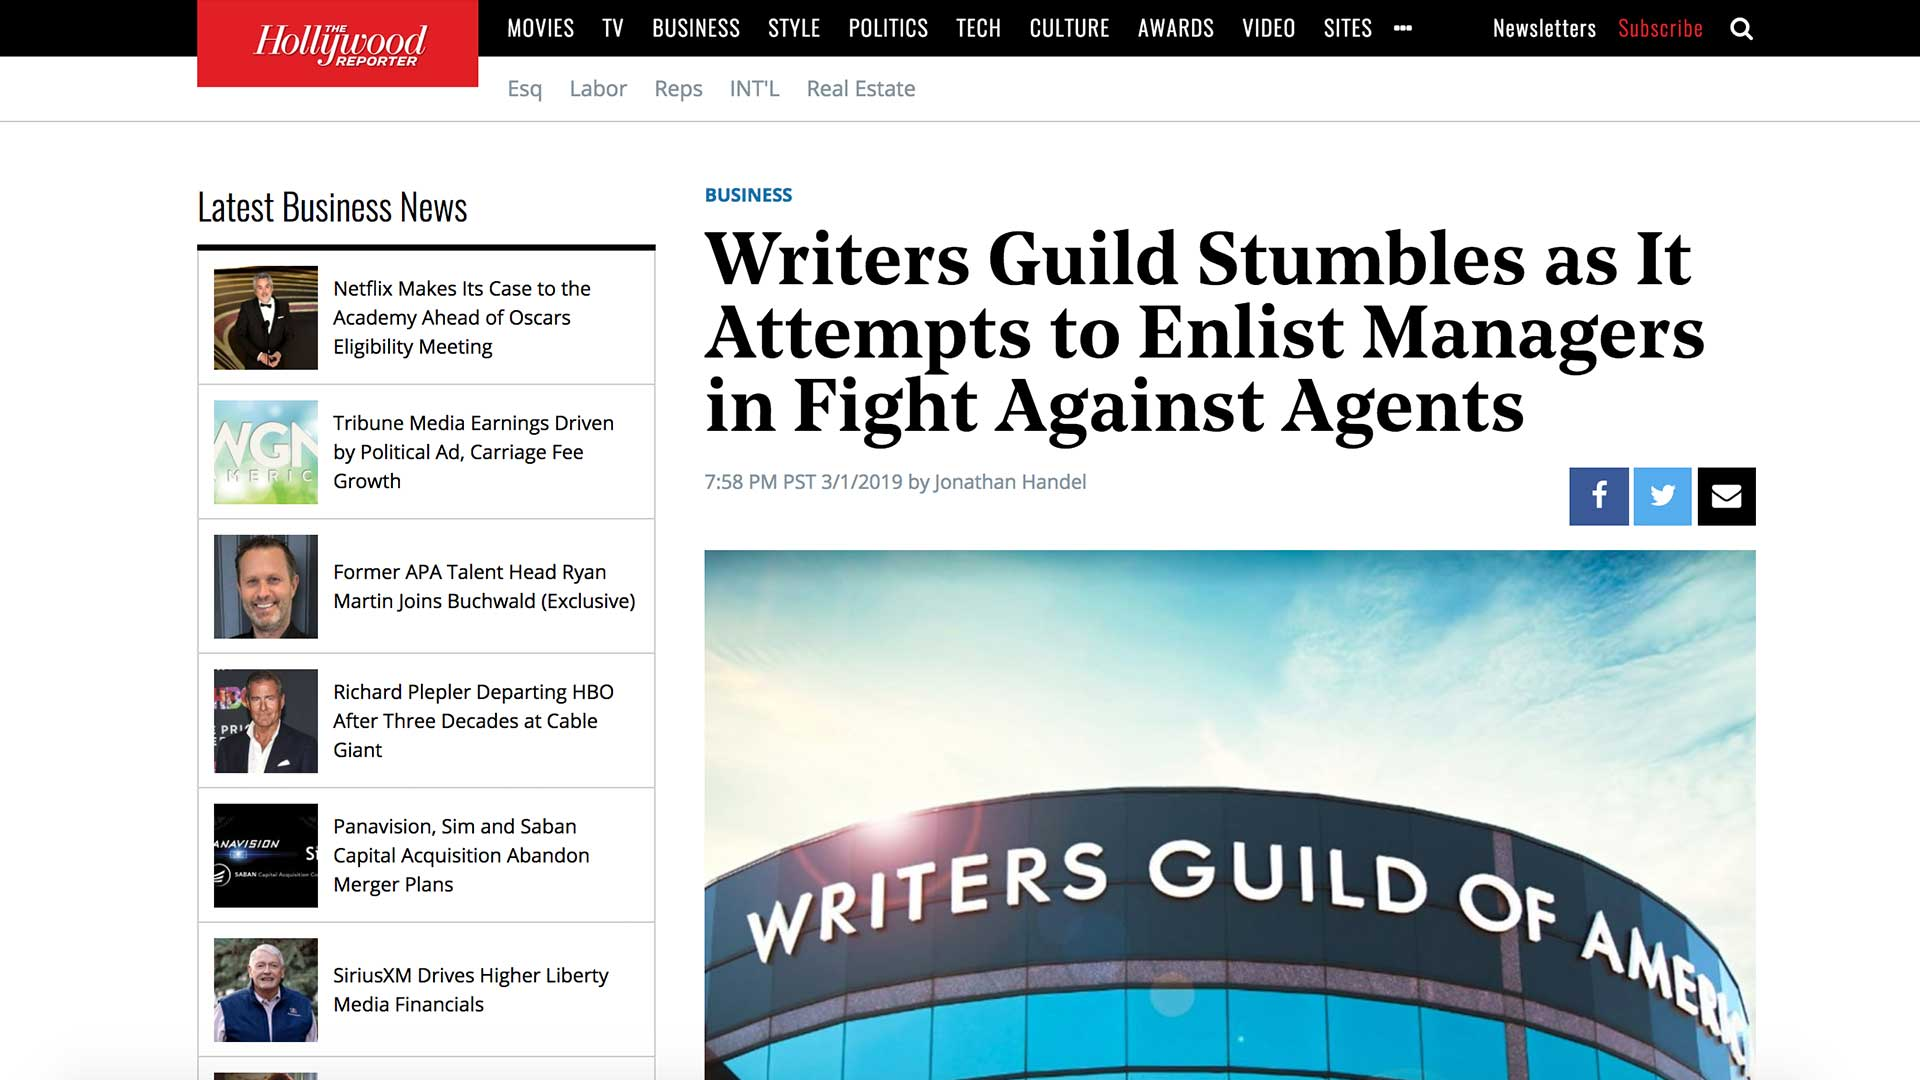 Fairness Rocks News Writers Guild Stumbles as It Attempts to Enlist Managers in Fight Against Agents